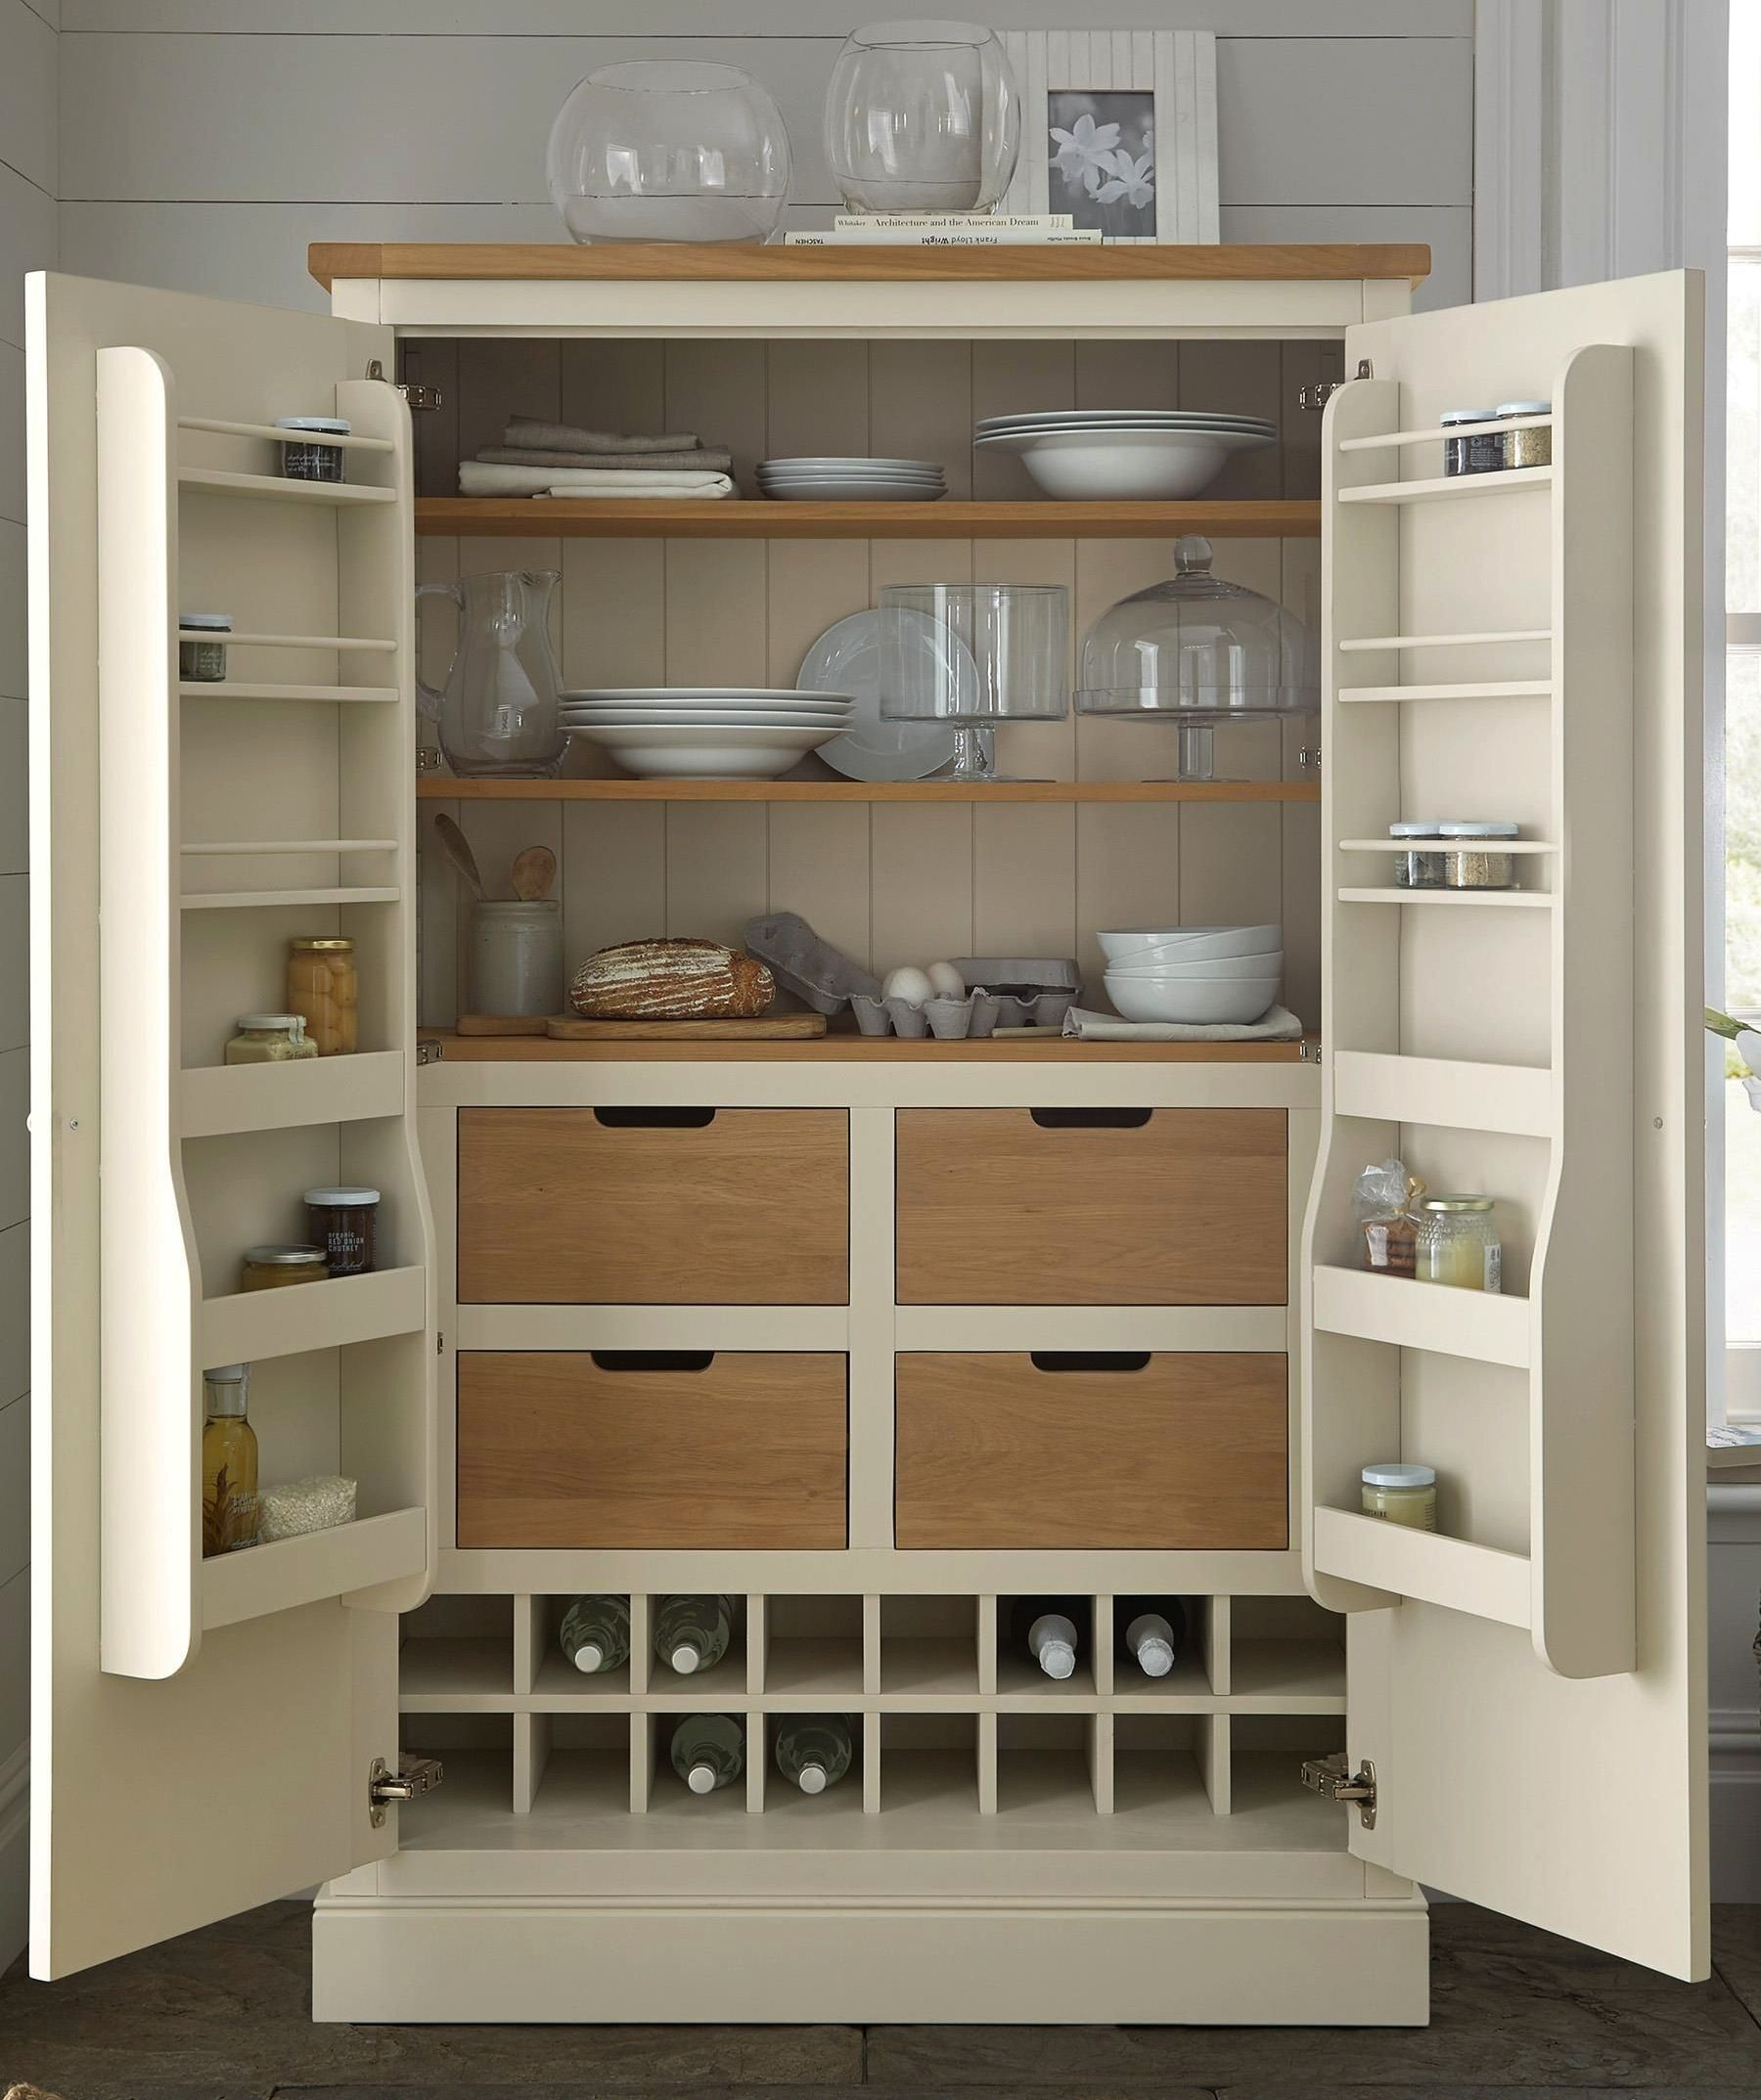 If You Need More Room For Keeping Food Or Crockery, A